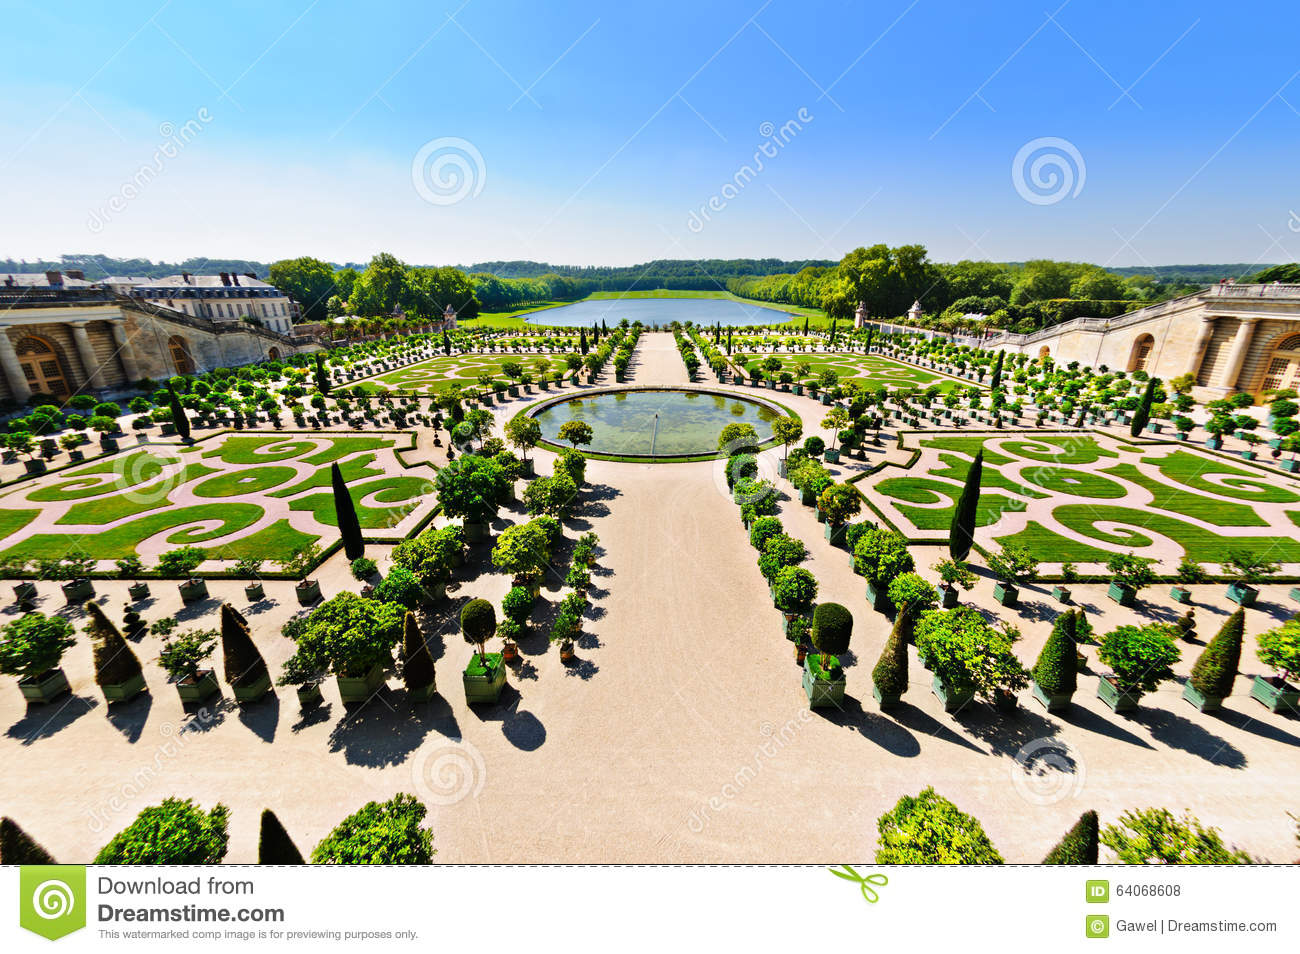 Le jardin de versailles paris france photo stock image for Les jardins de la ville paris